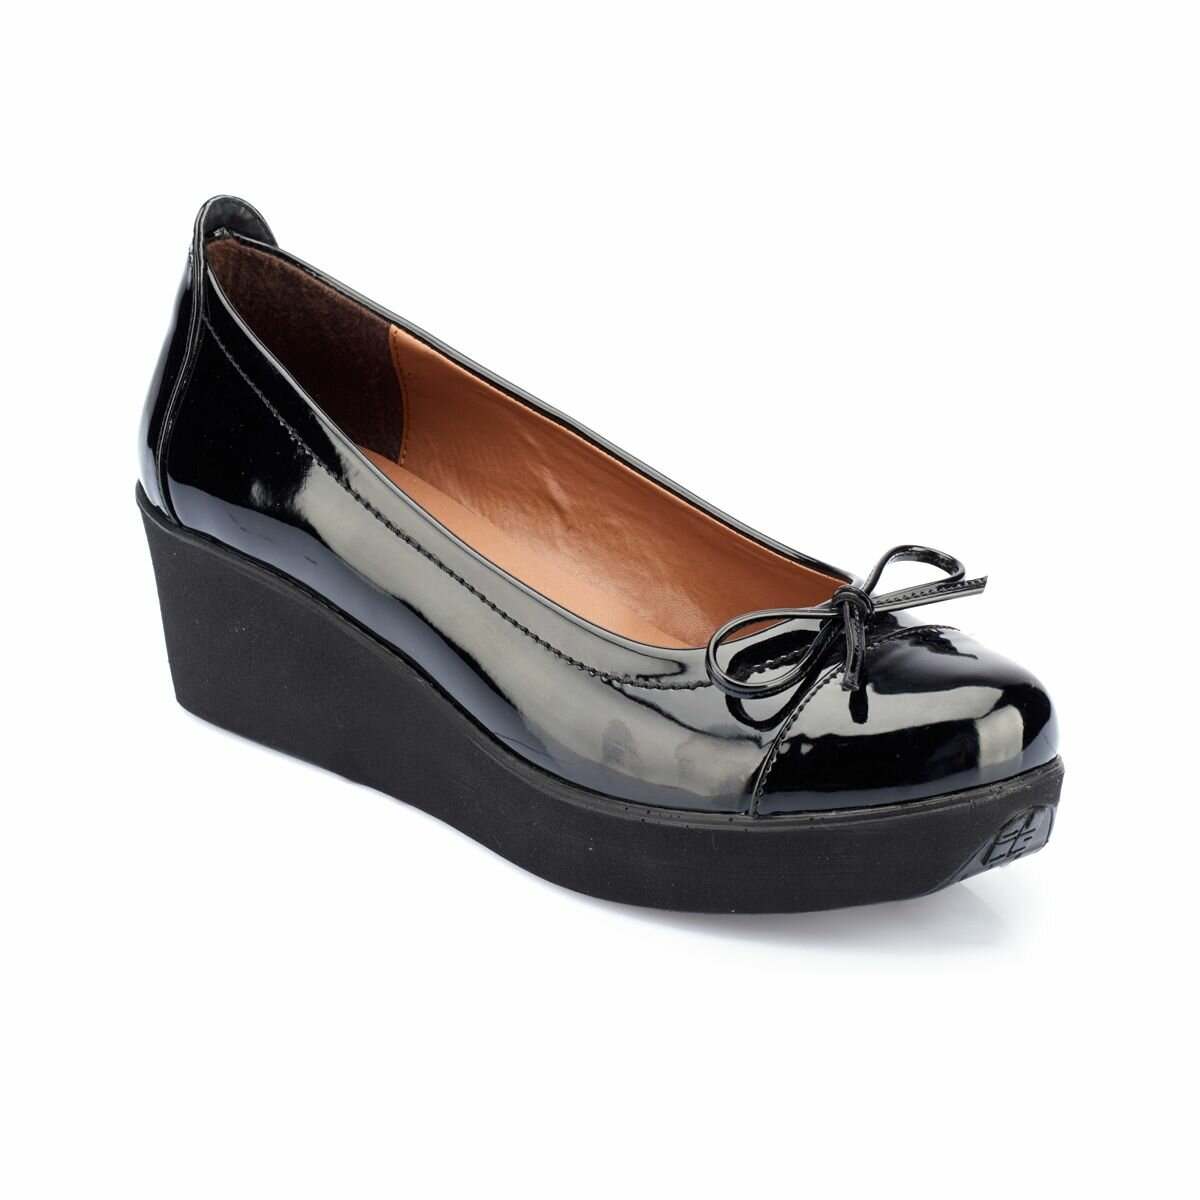 FLO 82. 307642.Z Black Women Shoes Polaris